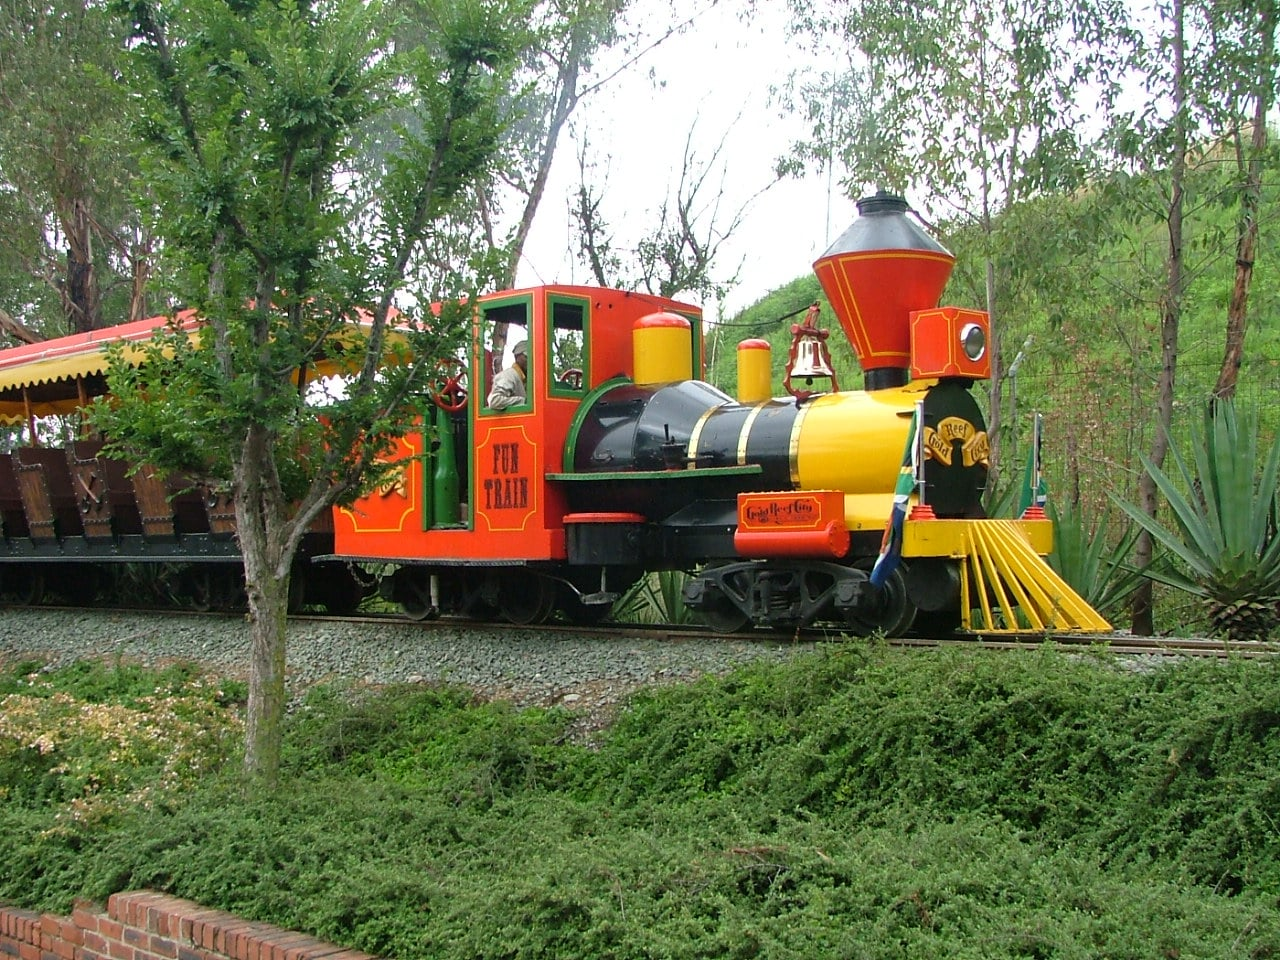 Fun Train at Gold Reef City, Gauteng